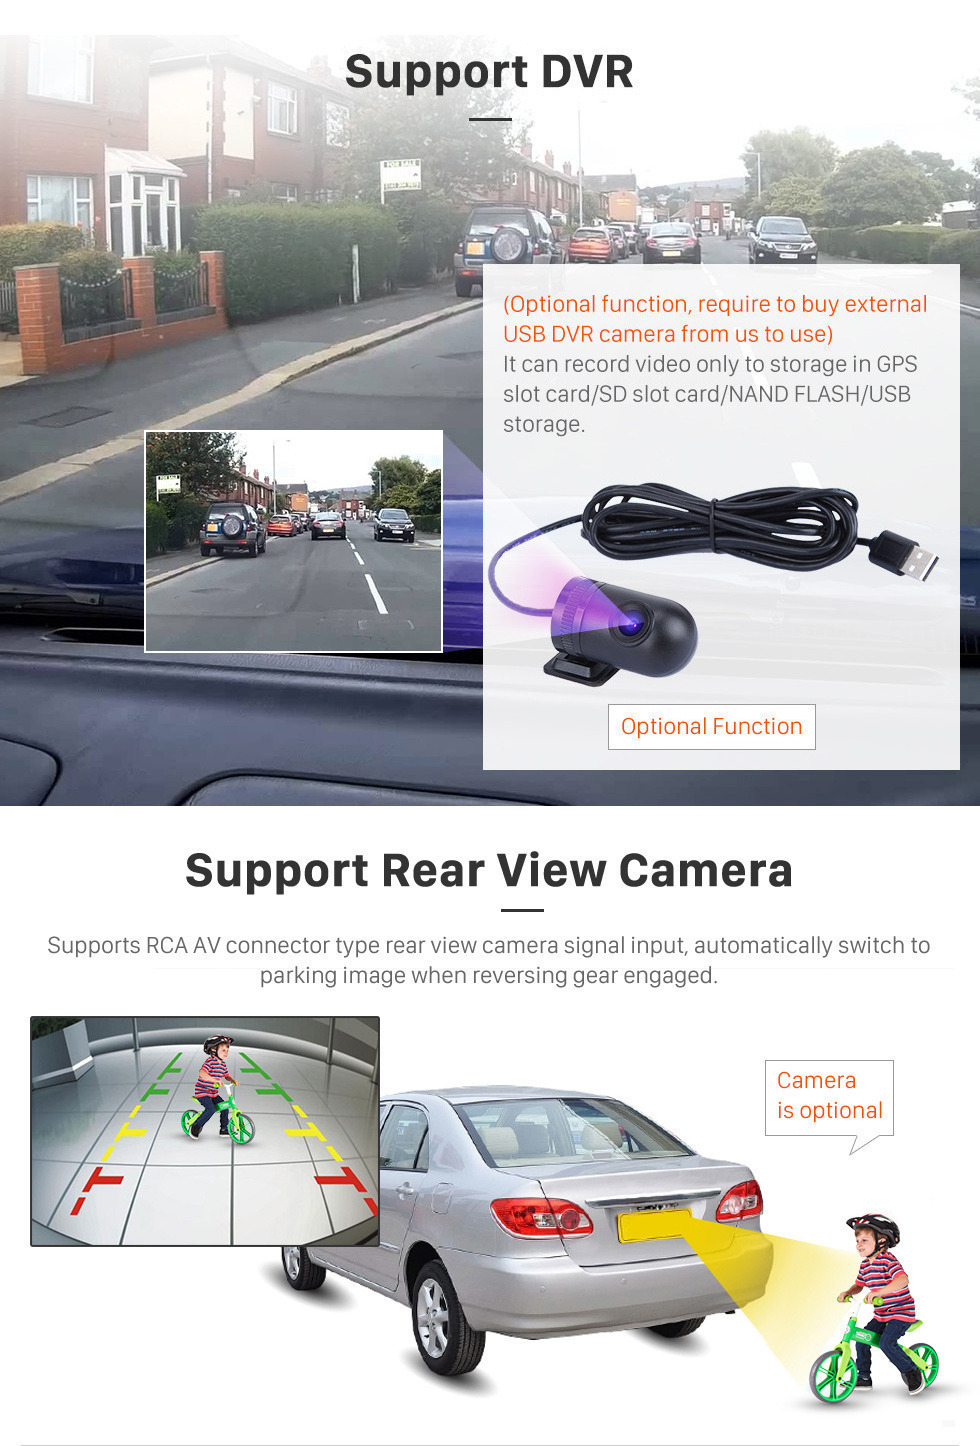 Seicane 9 Inch Android 9.0 GPS Navigation System Touch Screen For 2011-2014 KIA Morning Picanto Support Radio Bluetooth TPMS DVR OBD Mirror Link 3G WiFi TV Backup Camera Video